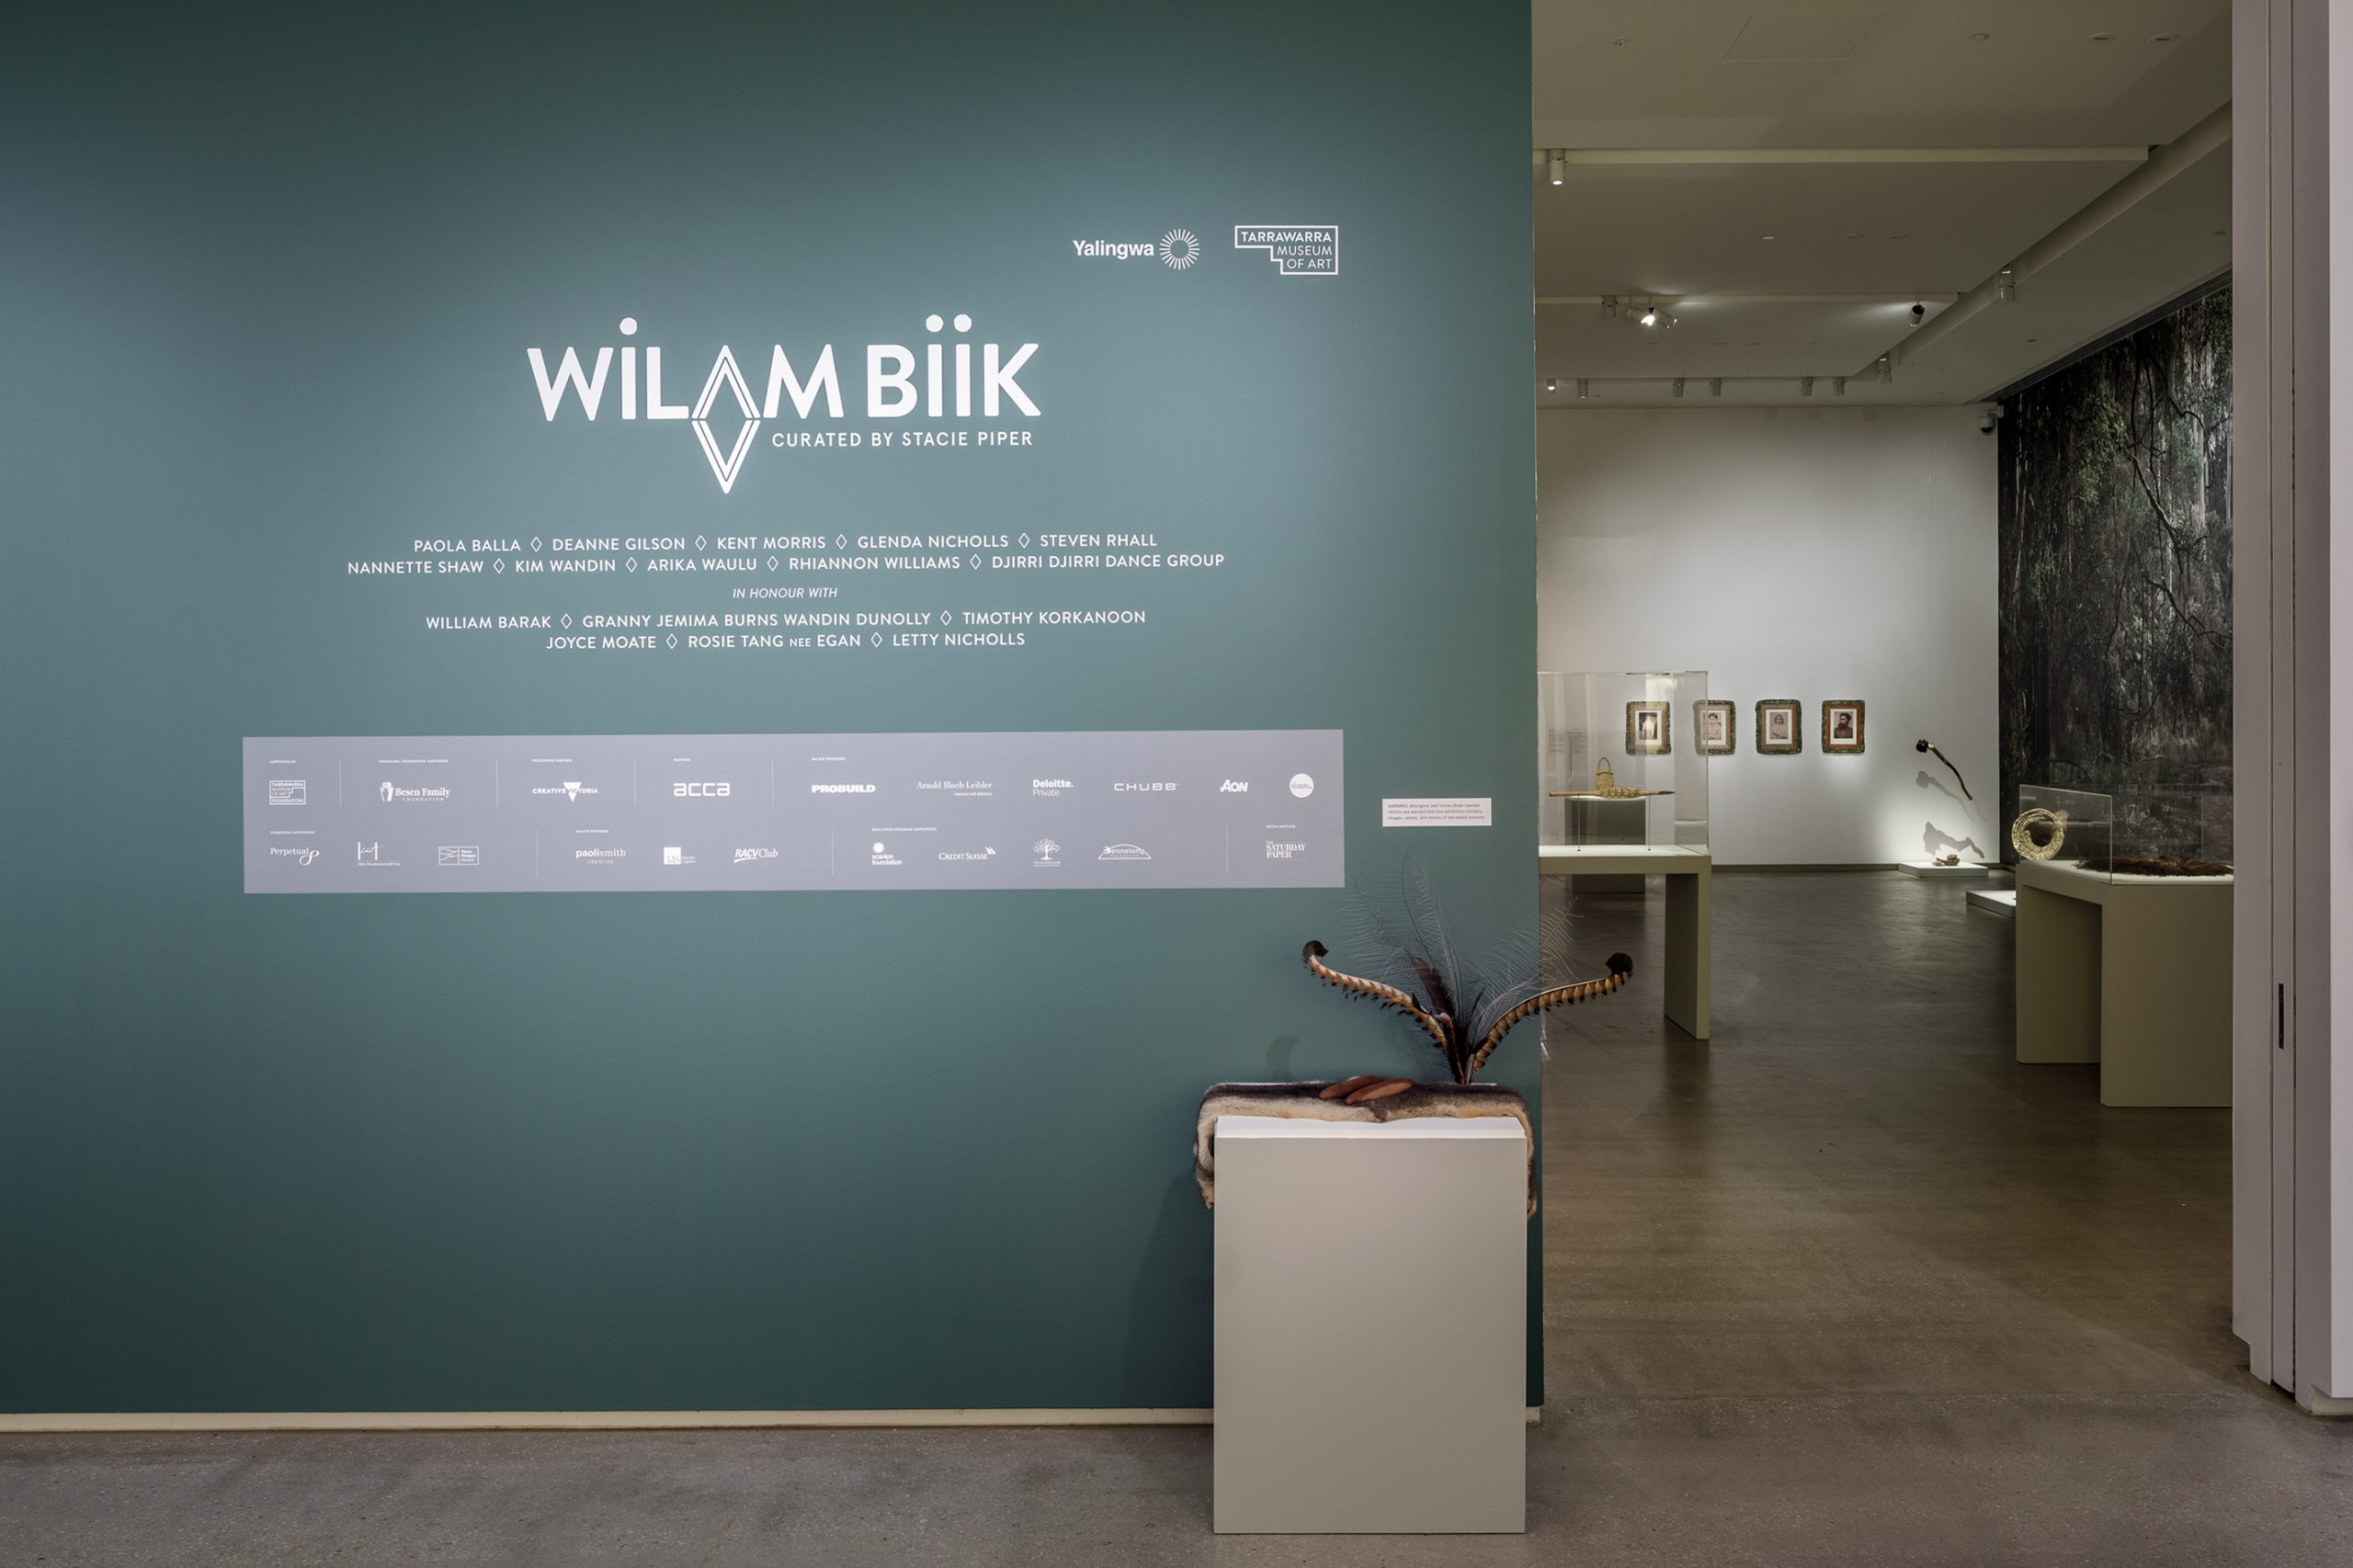 Welcome to WILAM BIIK